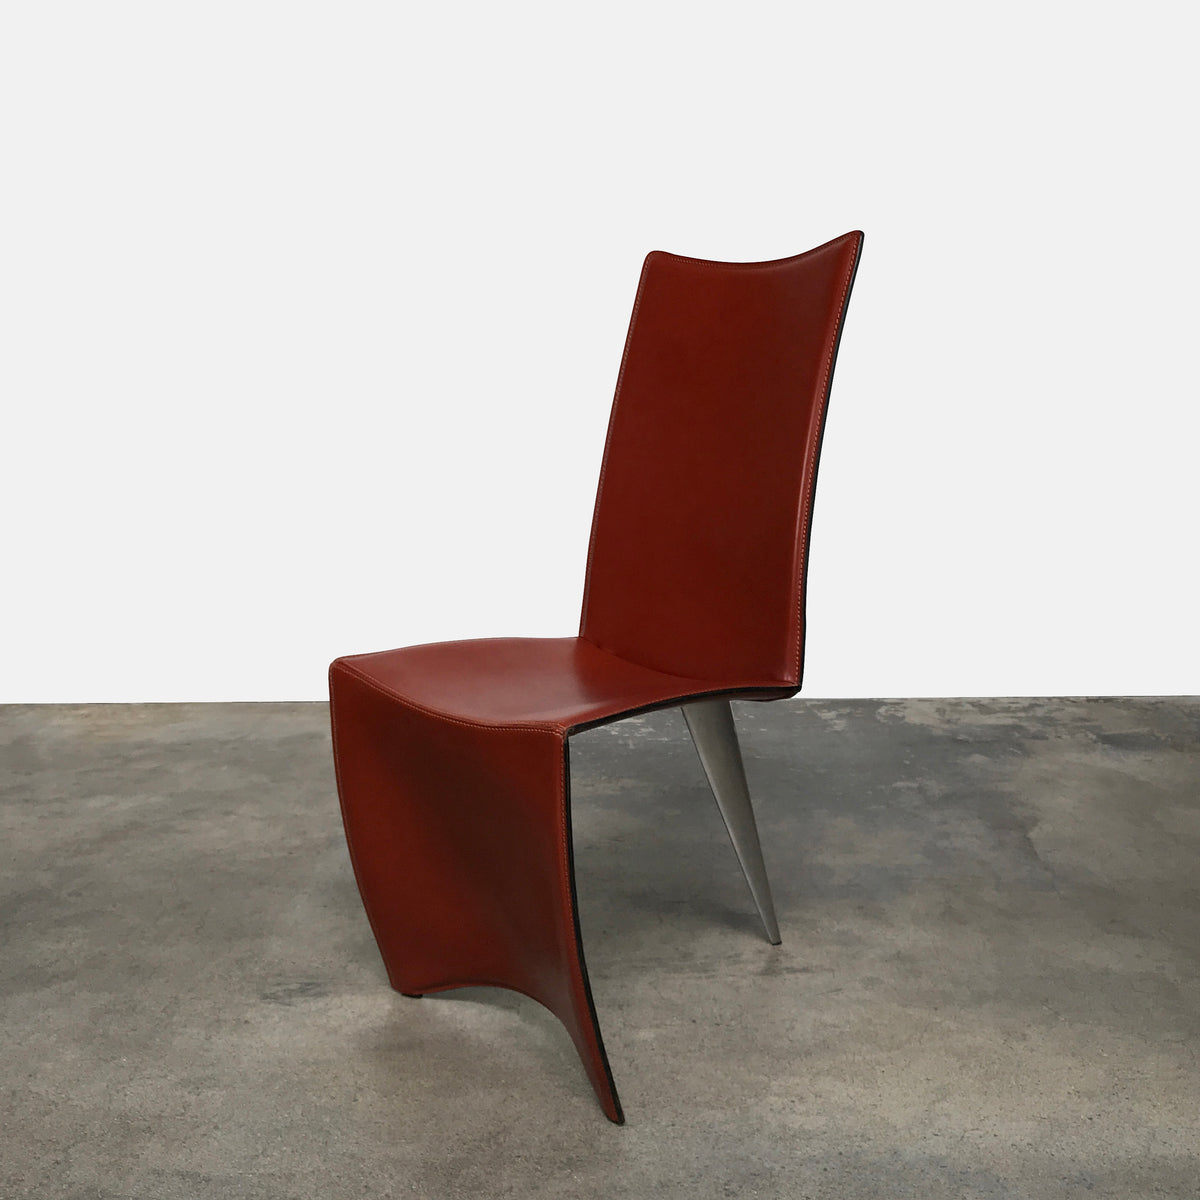 Ed Archer Dining Chair (2 in stock)